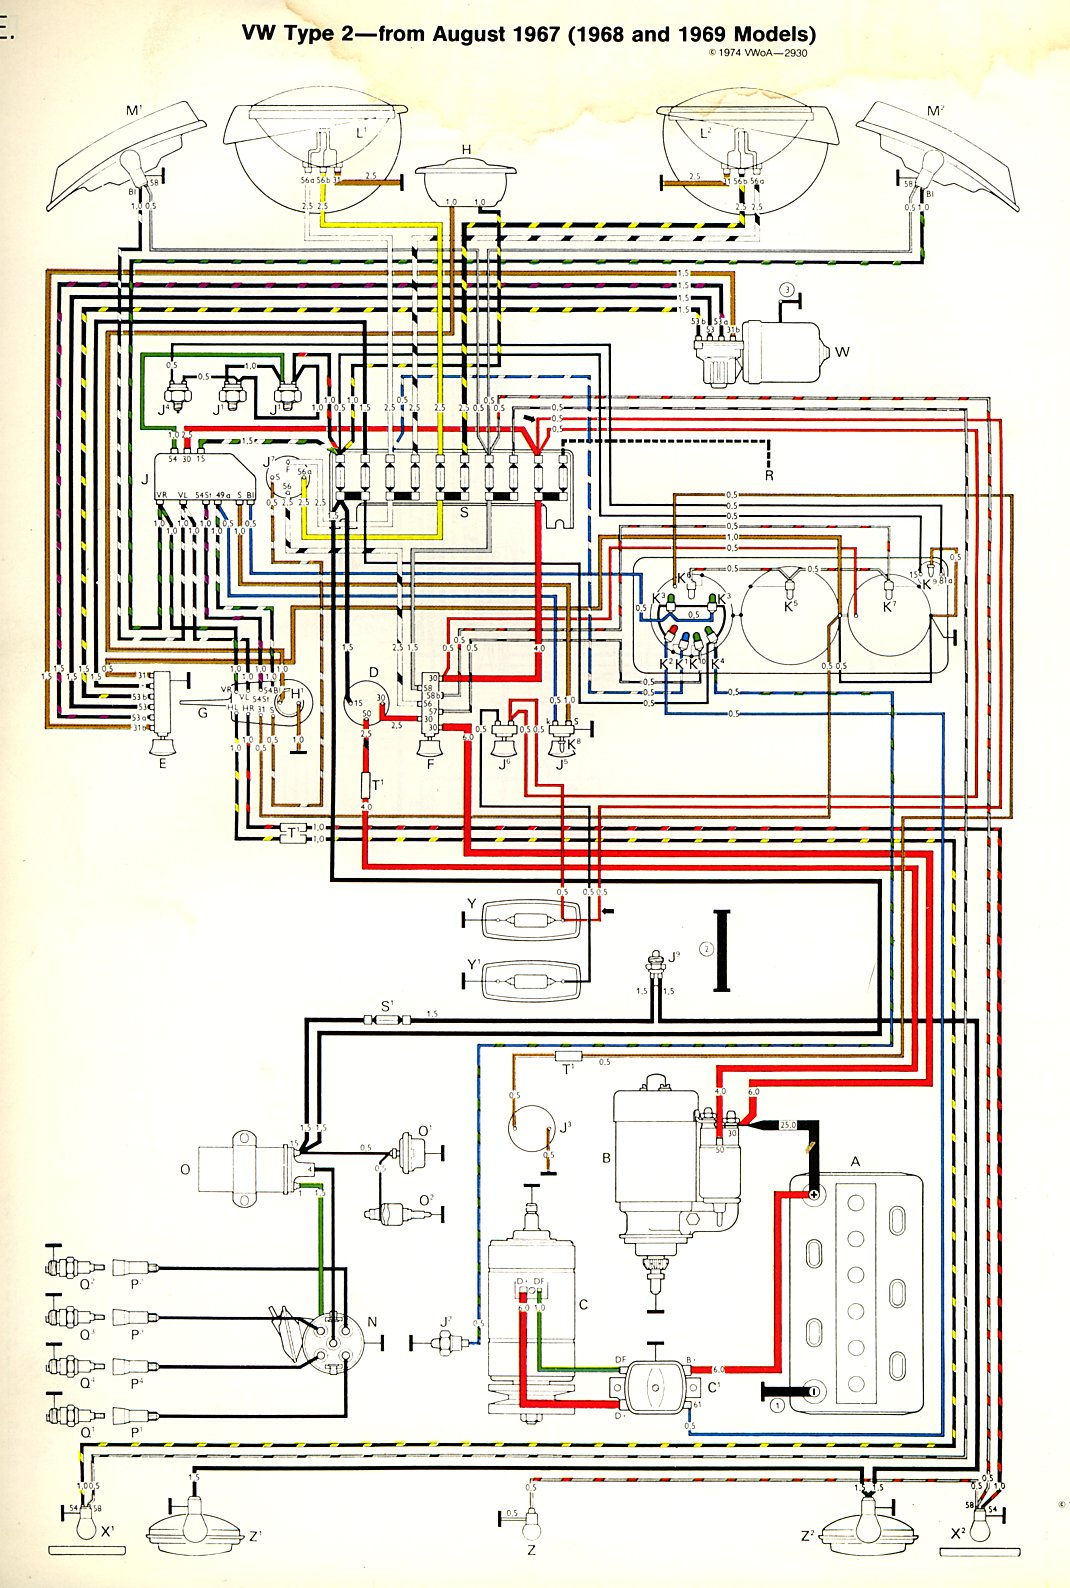 1973 Vw Bus Wiring Harness - wiring diagram solid-igniton -  solid-igniton.rilievo3d.itrilievo3d.it